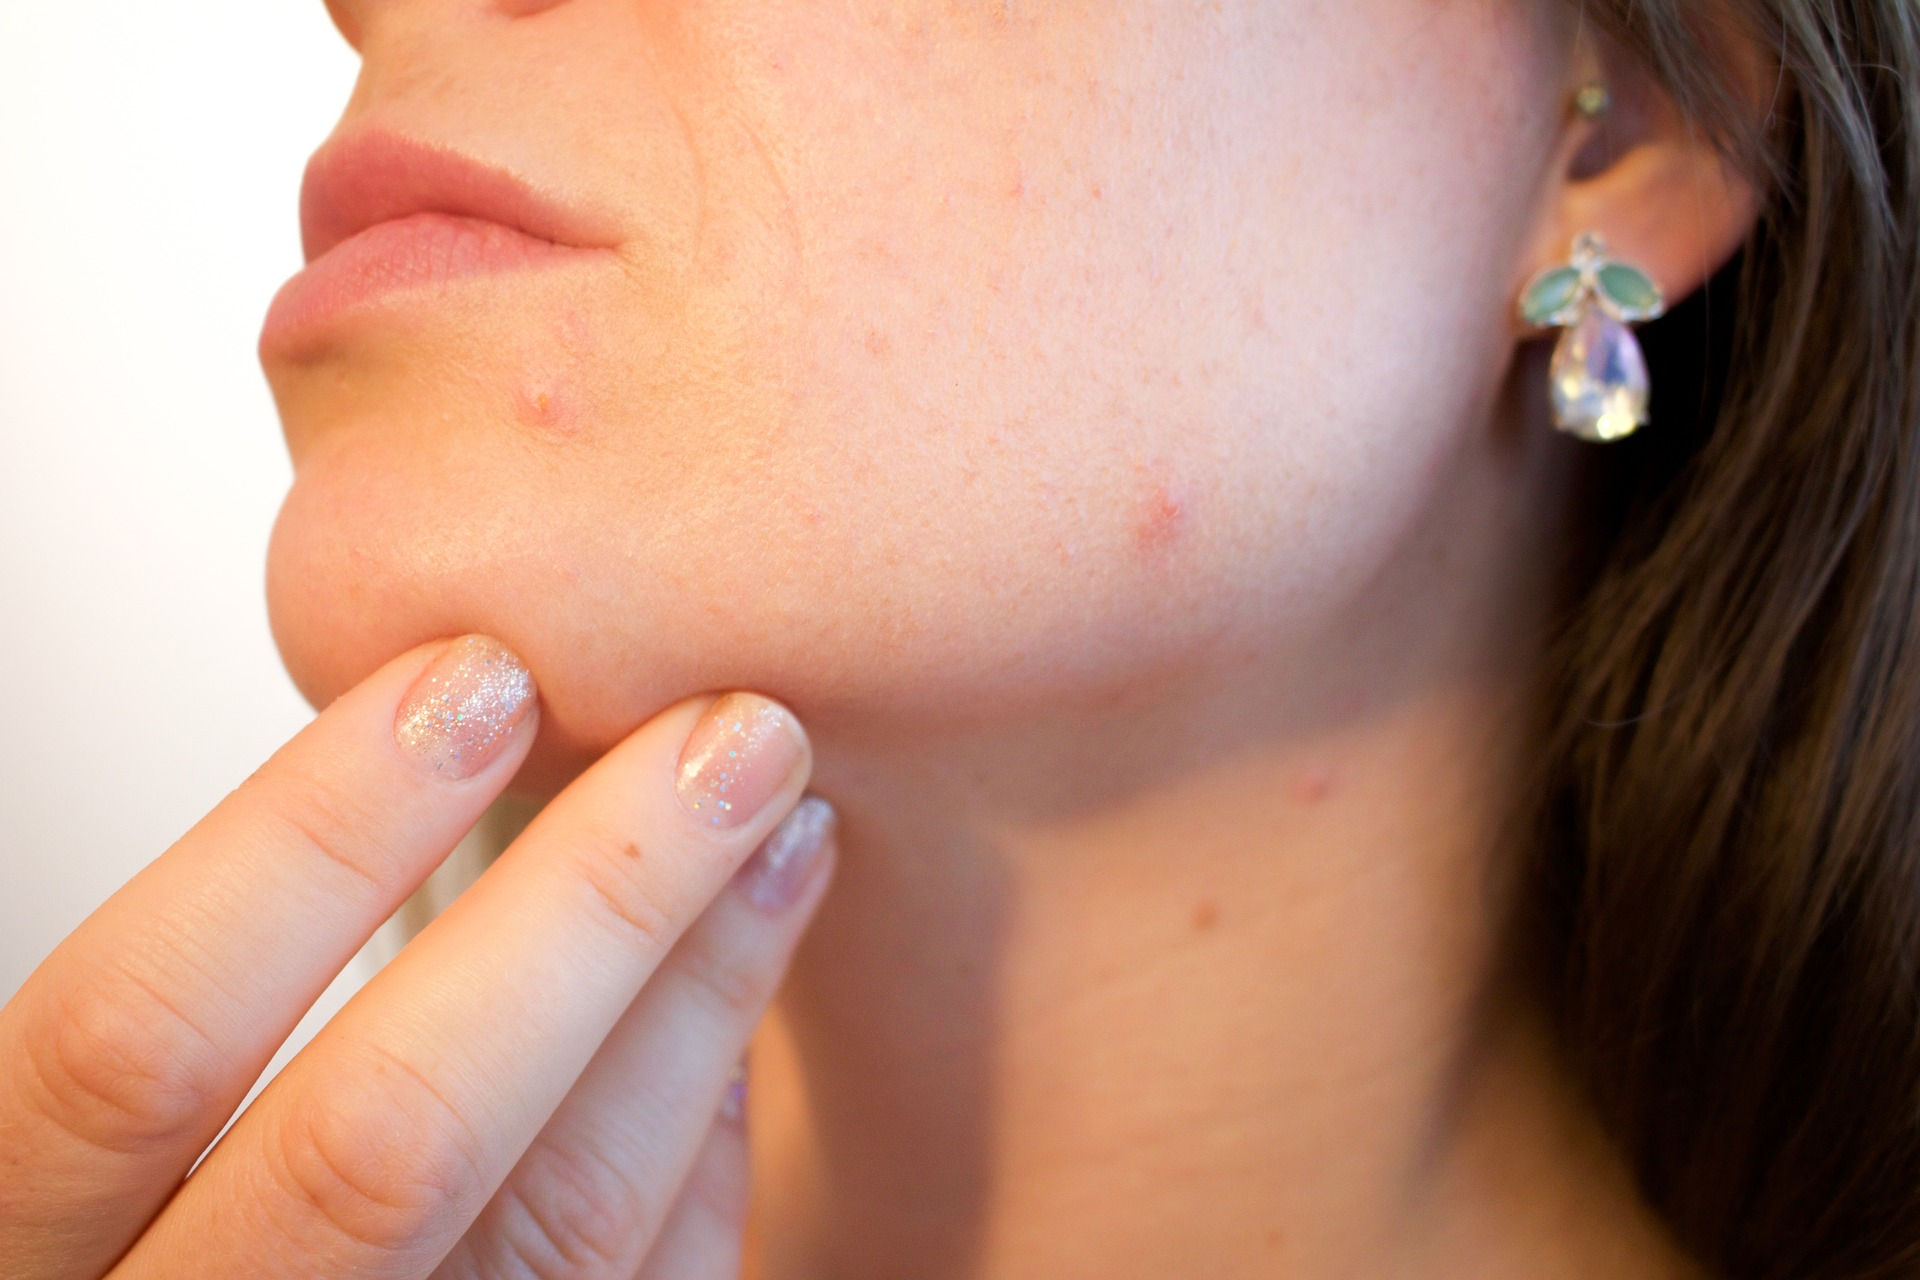 Why a vegan diet for acne